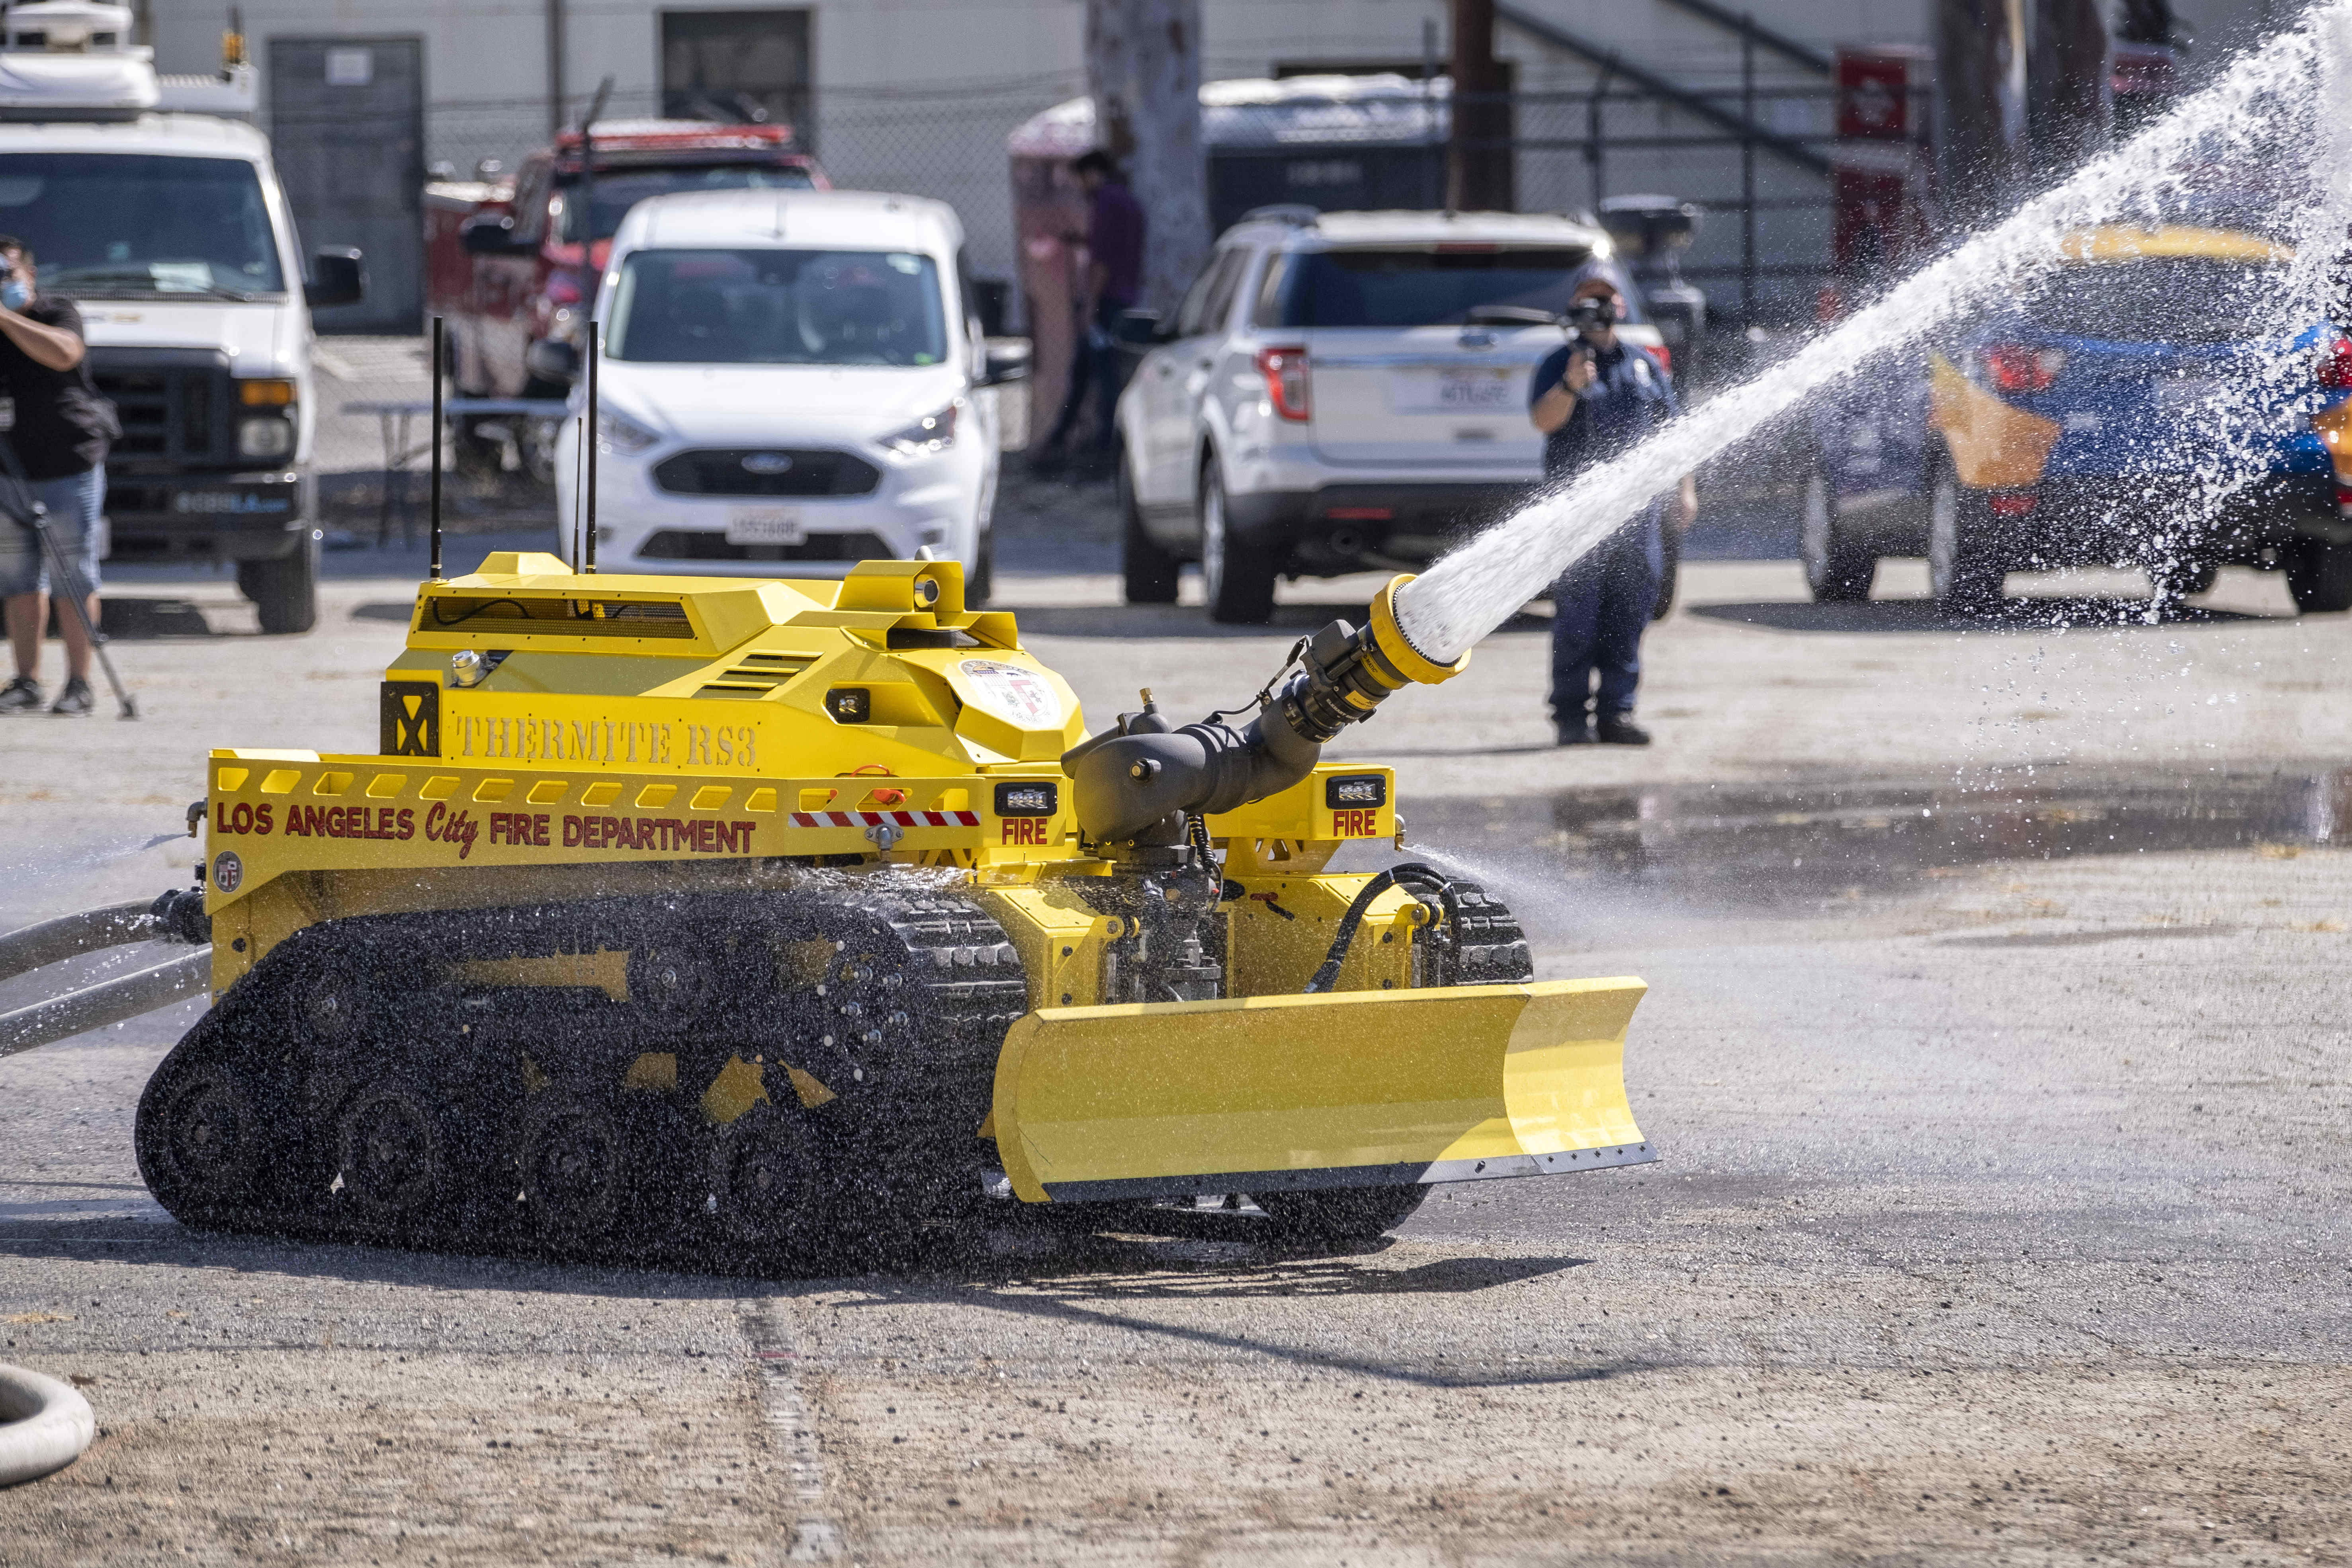 The Los Angeles City Fire Department demonstrates their new Thermite RS3 robotic vehicle in a parking lot adjacent to the Frank Hotchkin Memorial Training Center in Los Angeles, Tuesday, Oct. 13, 2020. (Hans Gutknecht/The Orange County Register via AP)